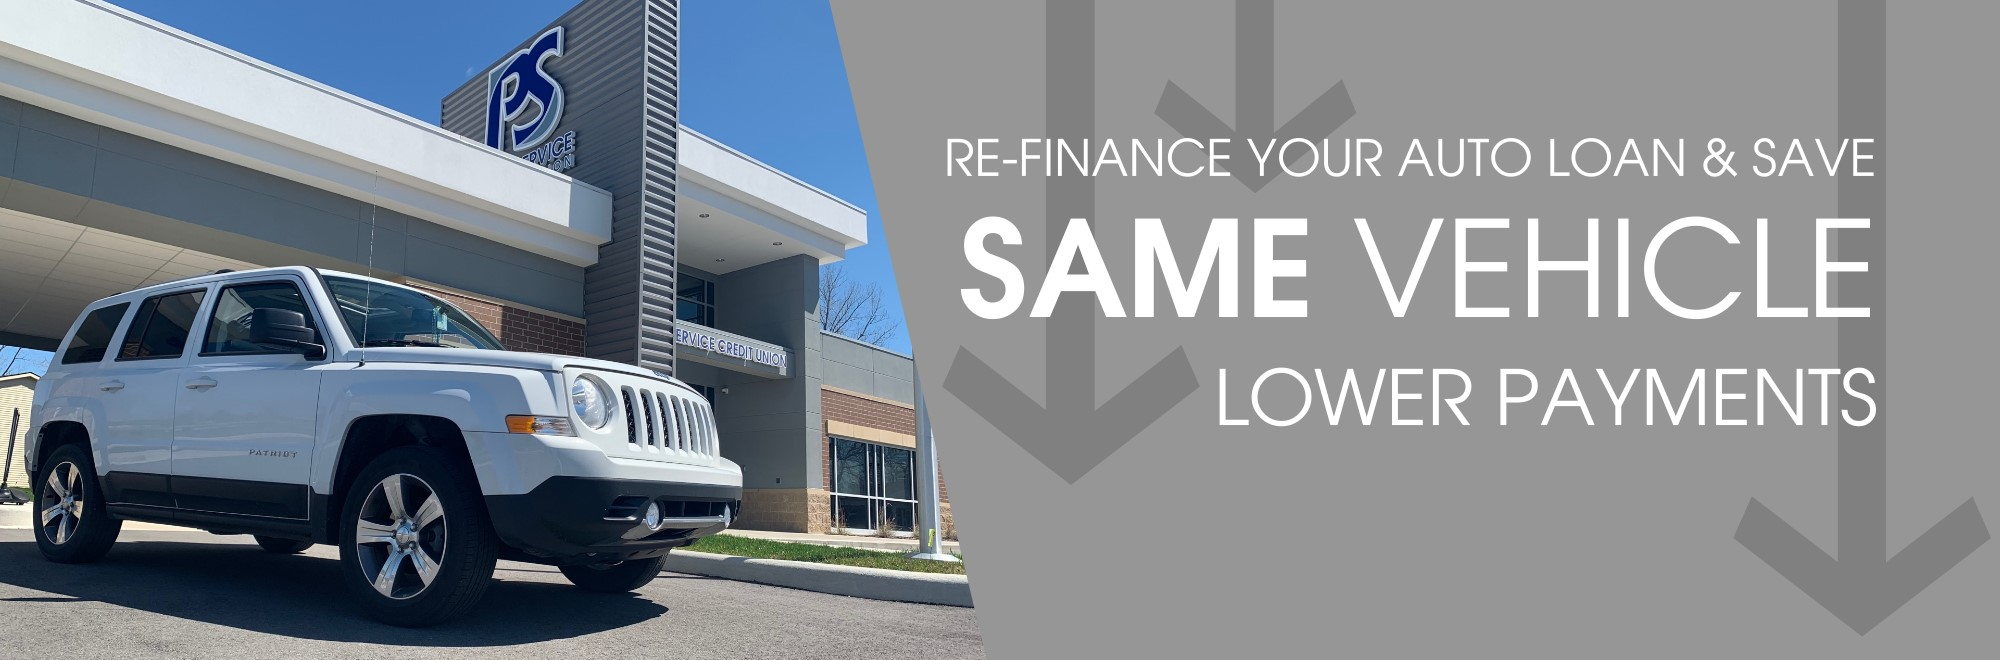 Refinance your auto loan and save money!  Same Vehicle. Lower Payments